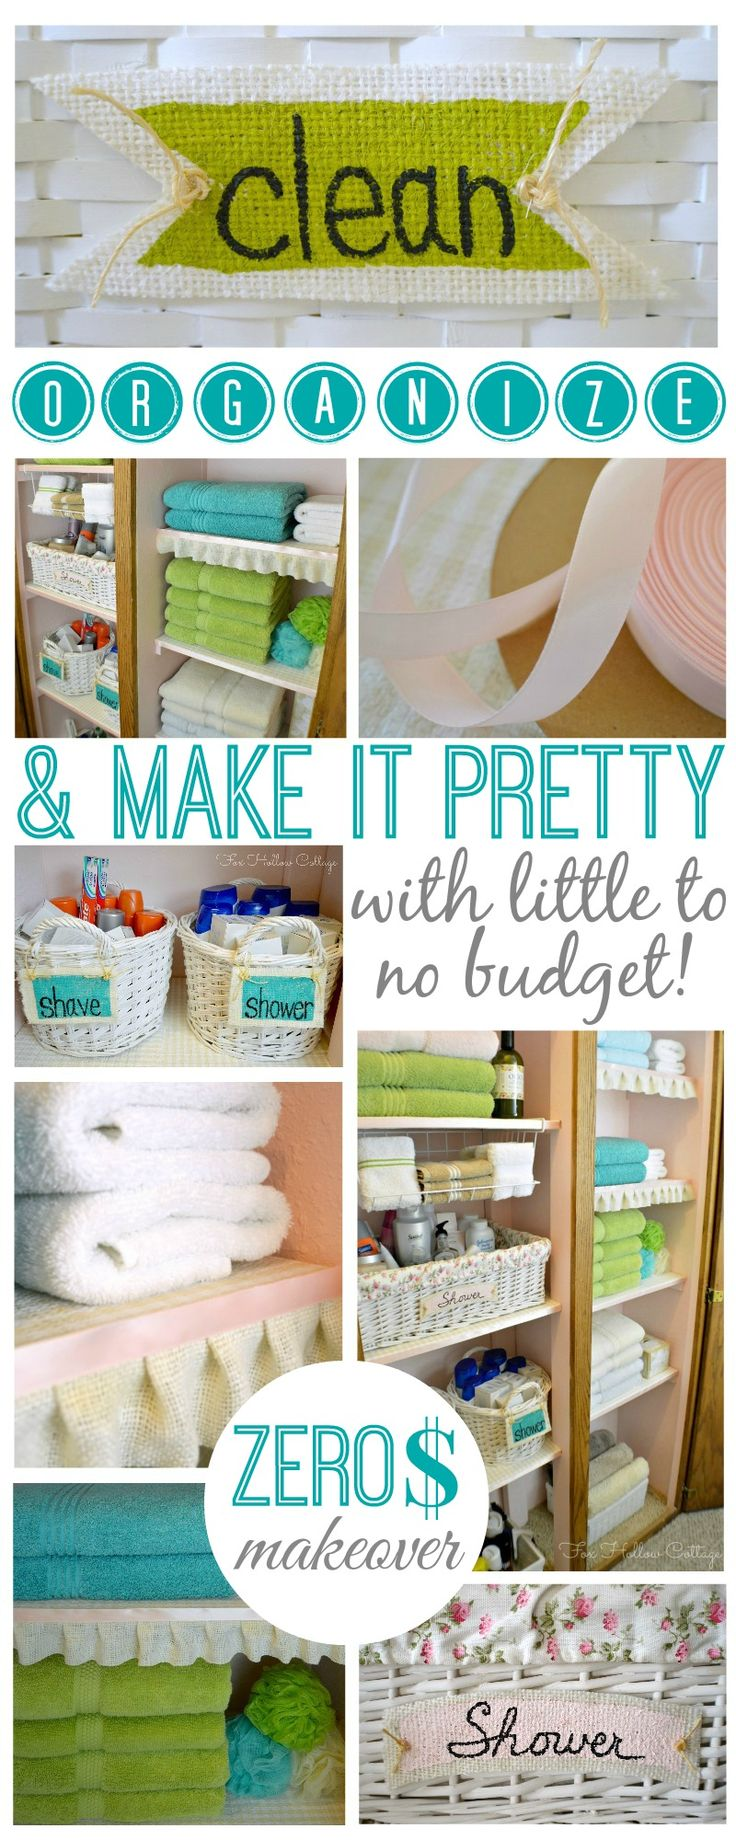 Linen Closet Before and After Zero Budget (shop your home!) Makeover   Clean, Purge and Organize